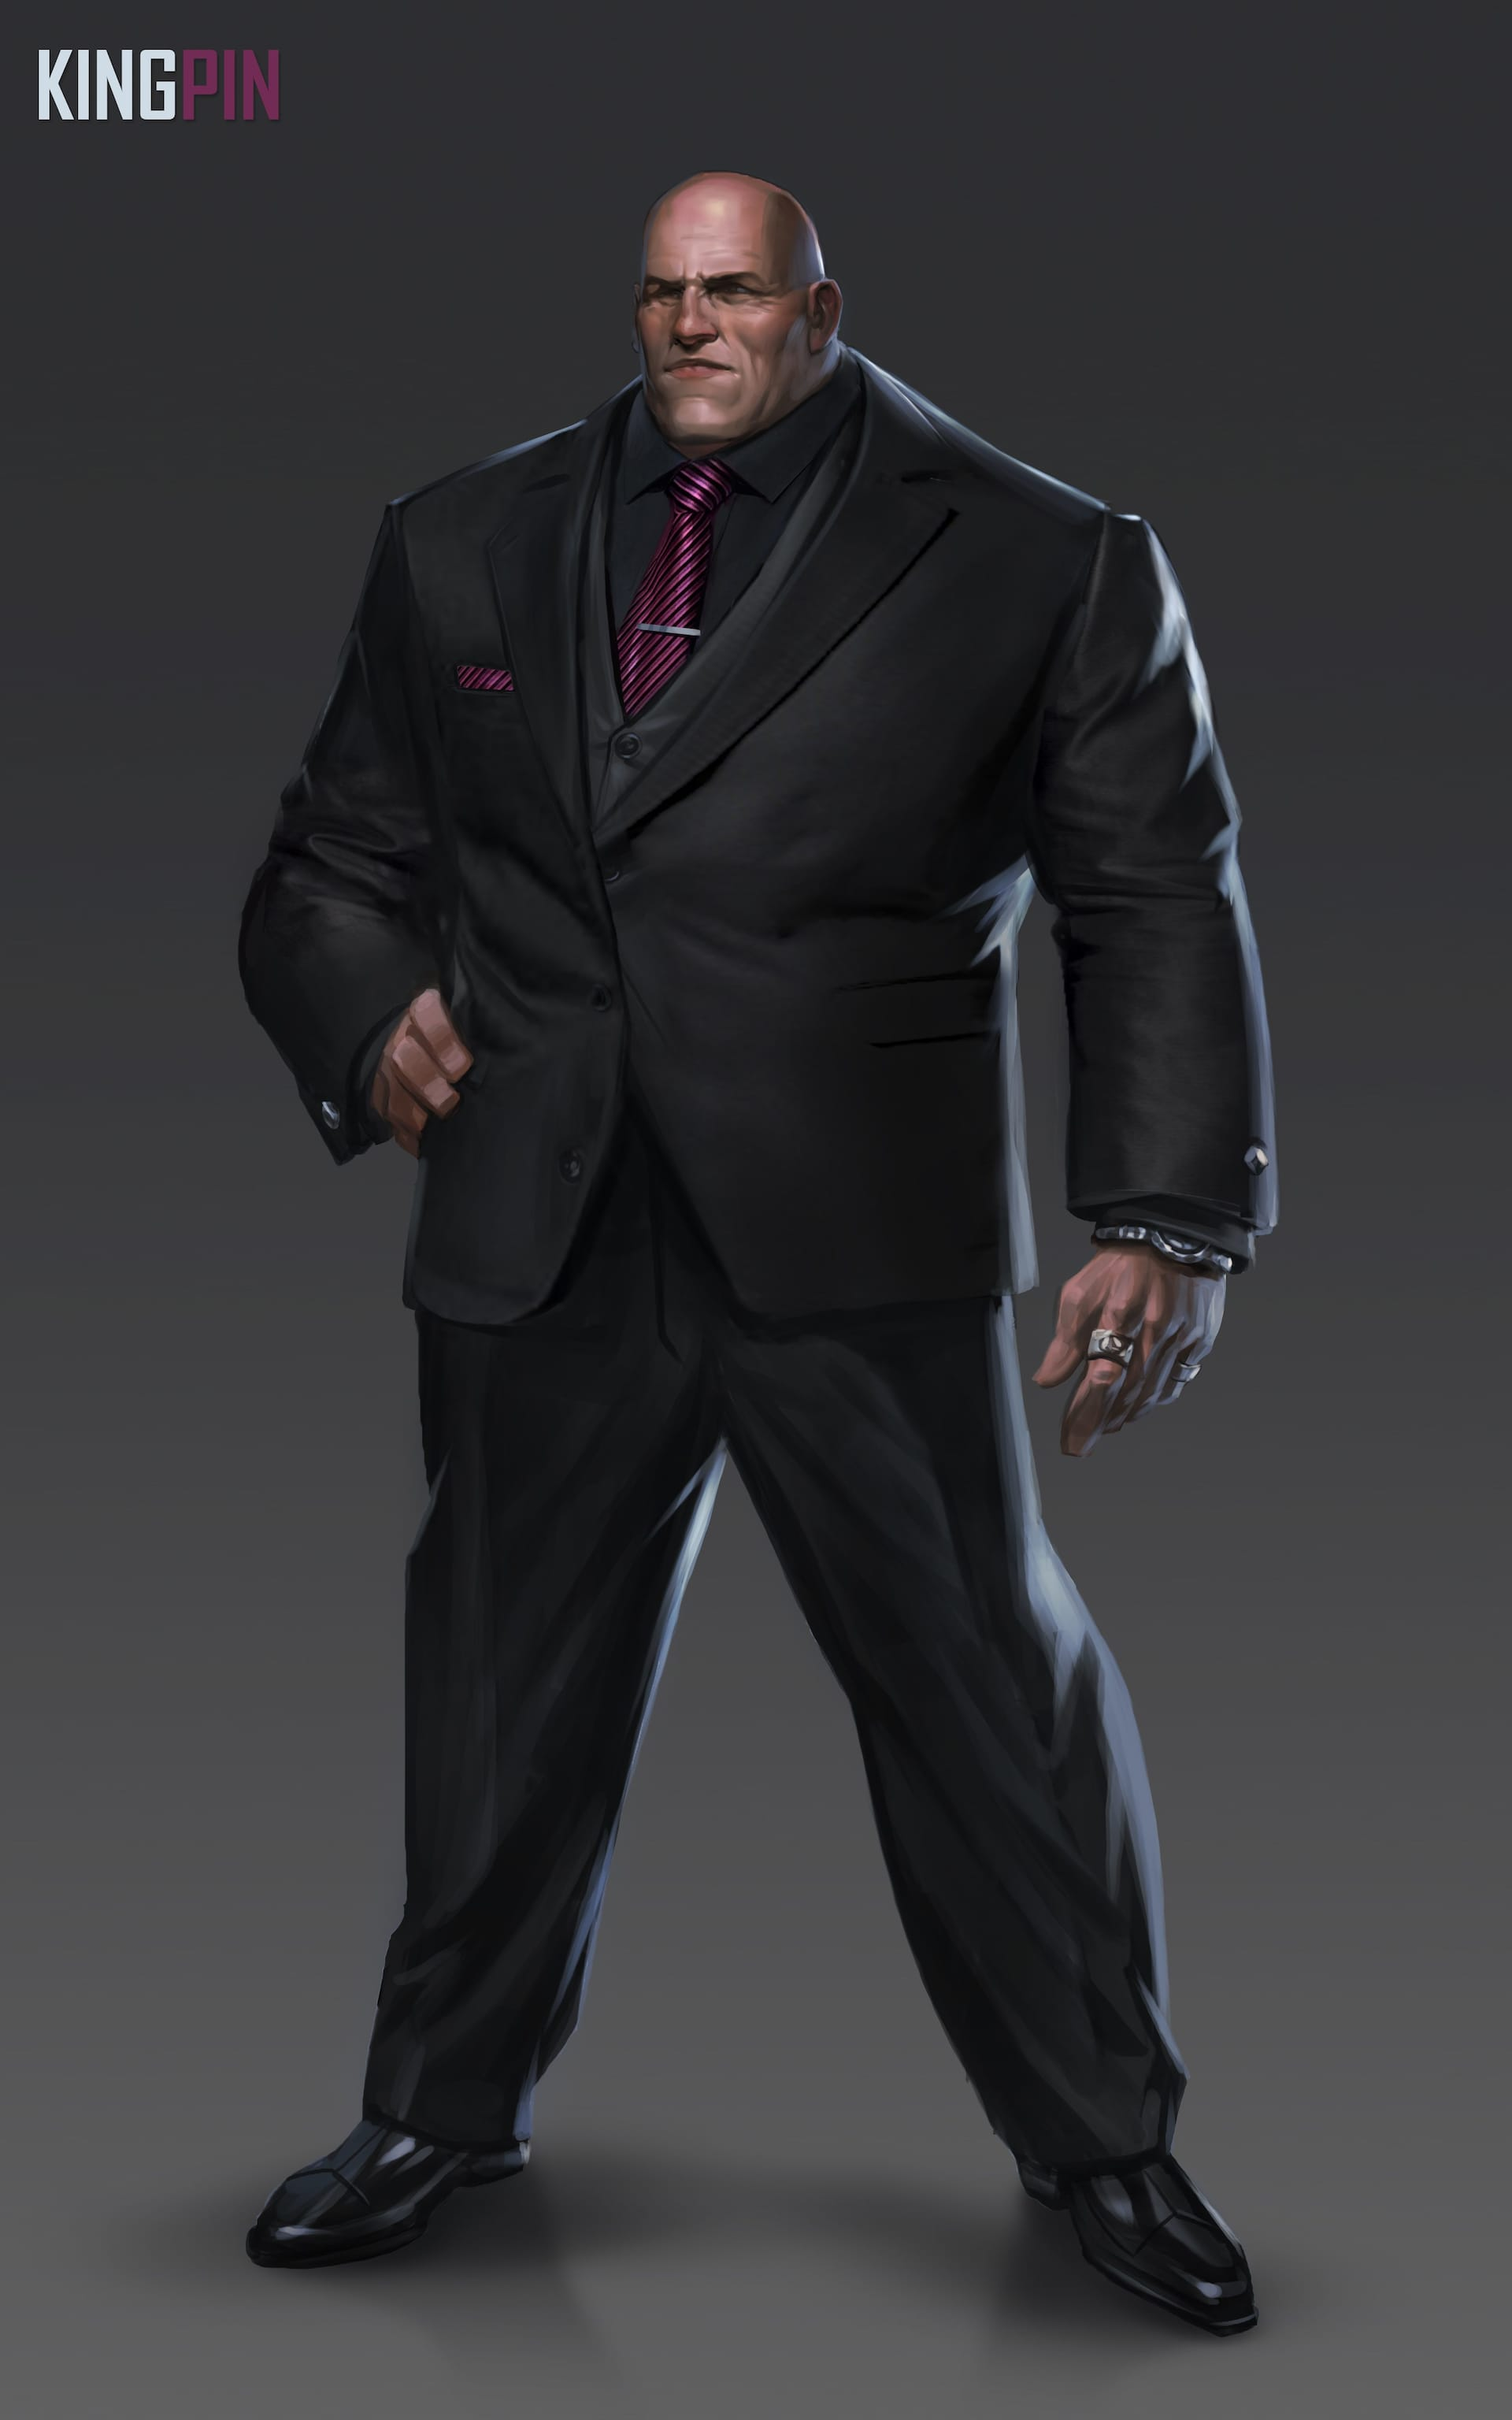 Spiderman - Kingpin Concept